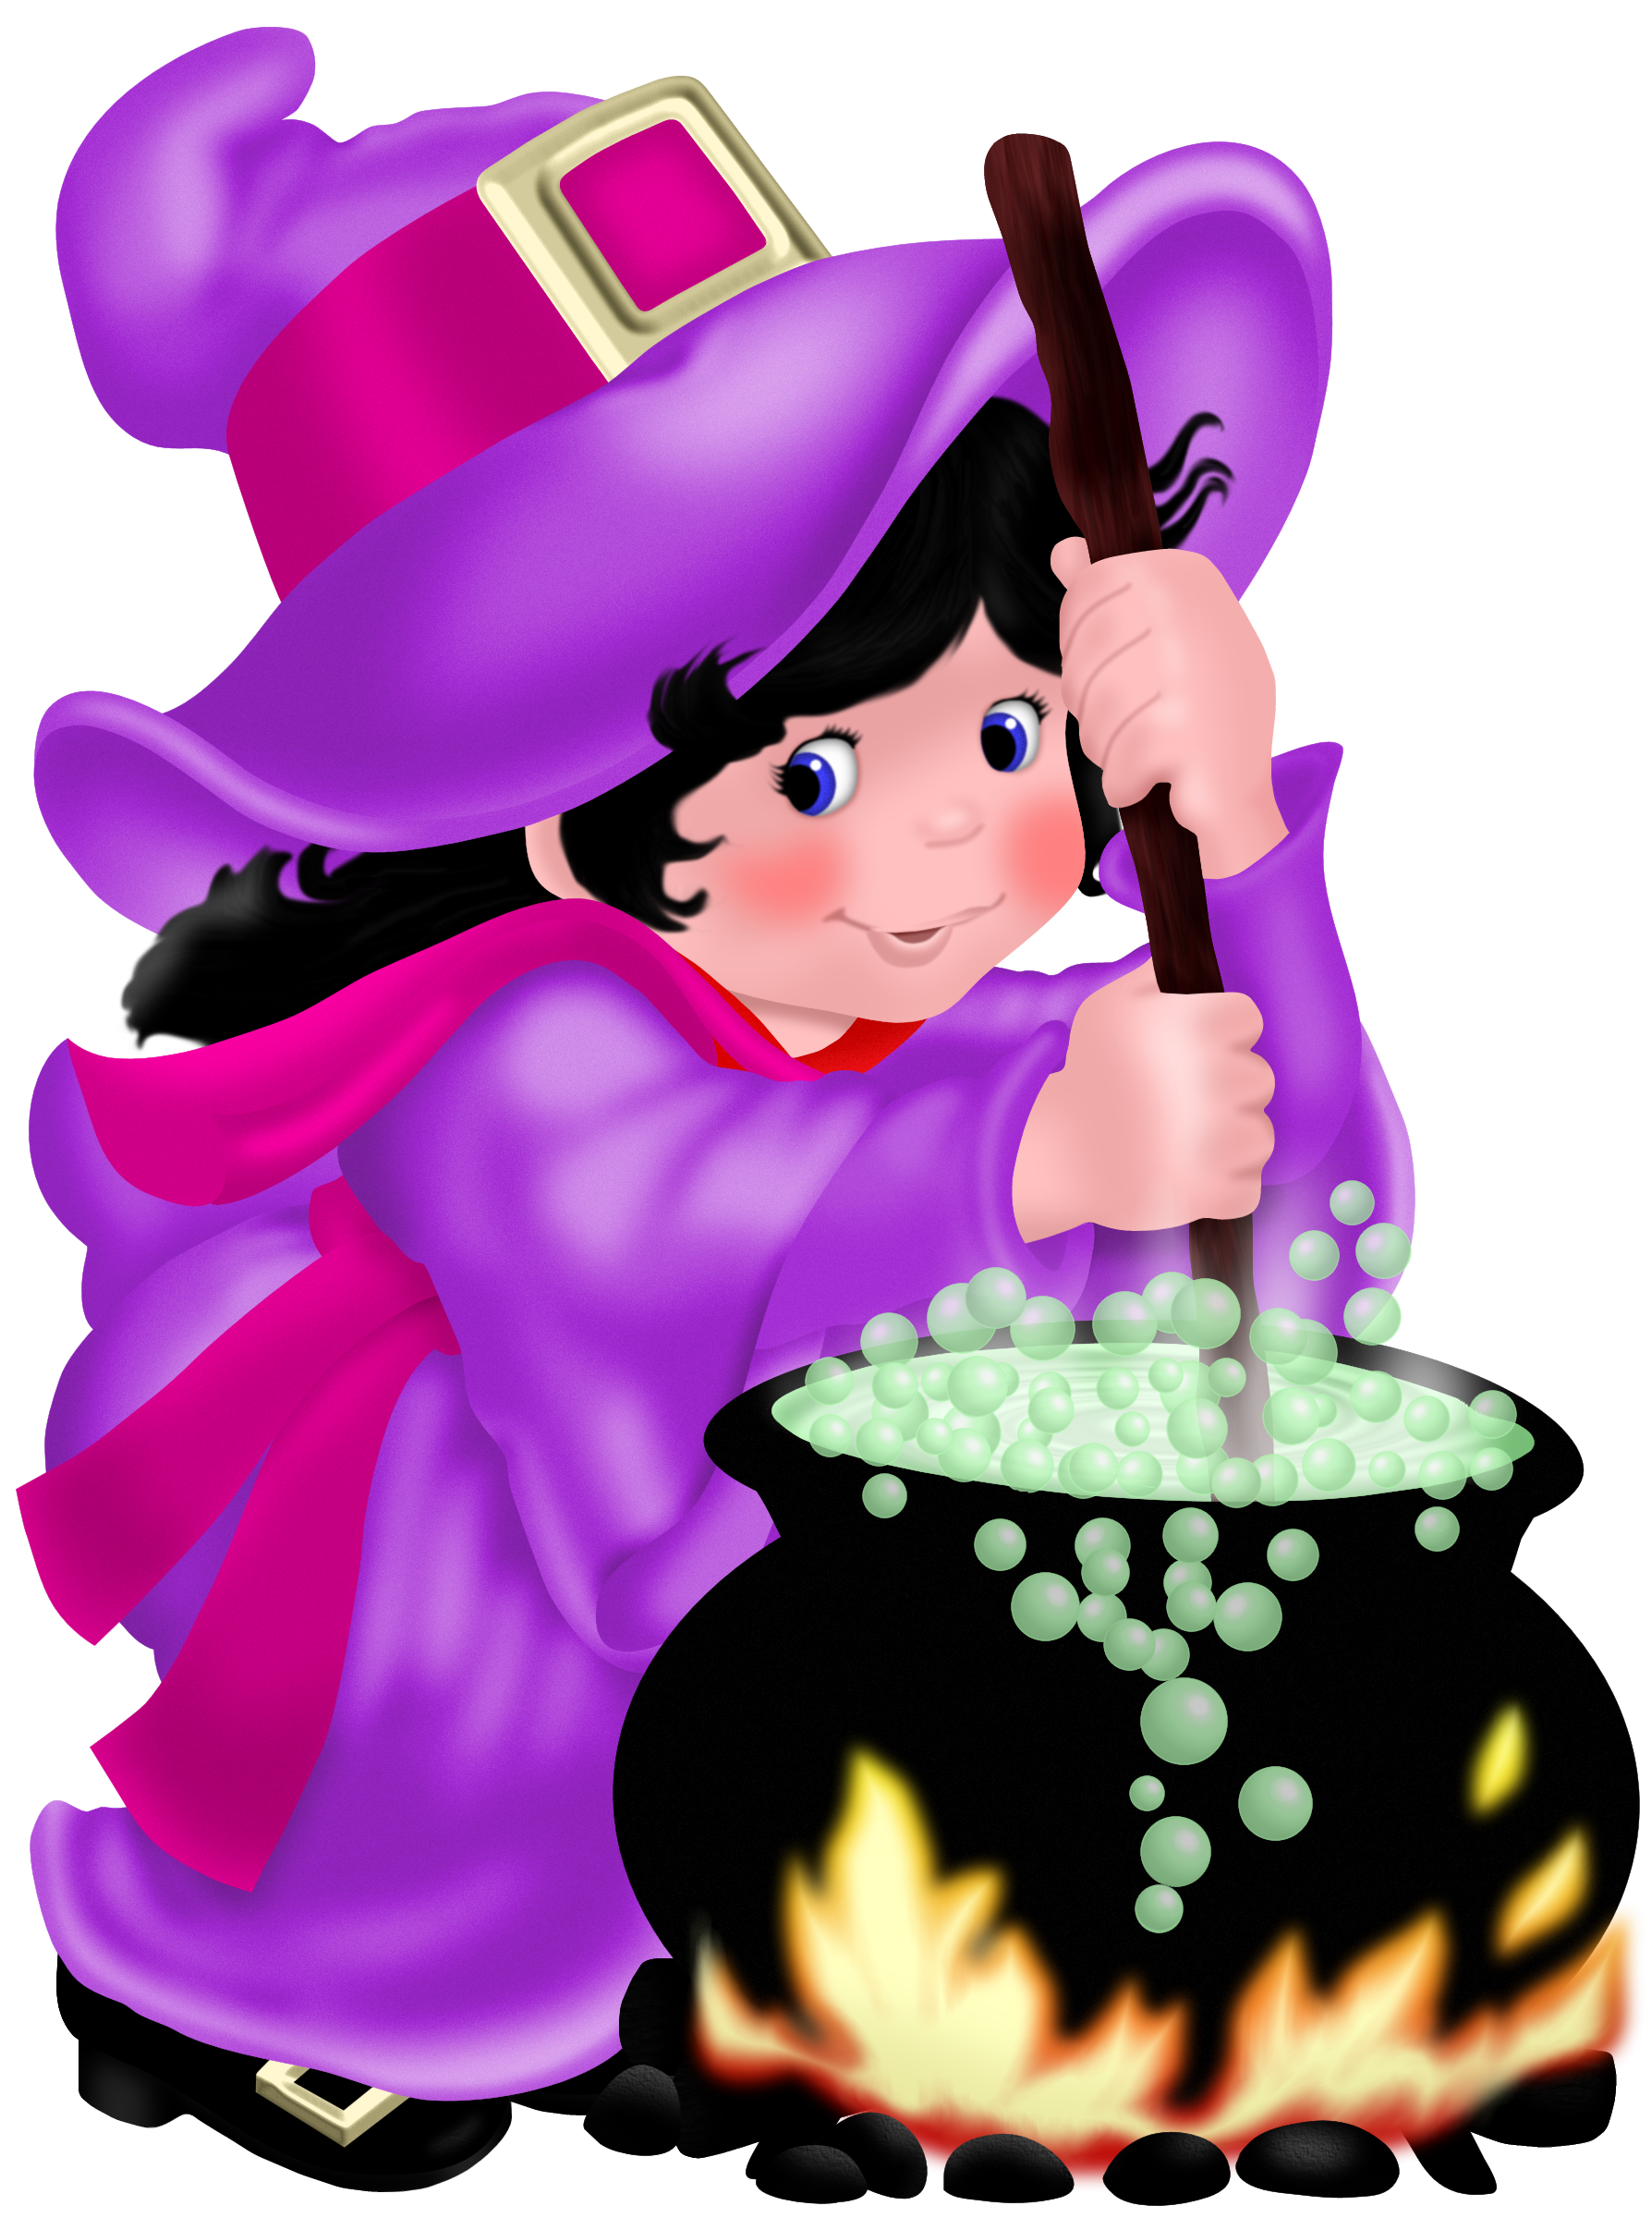 Clipart halloween male witch image royalty free library GIFS HALLOWEEN | halloween | Pinterest | Gifs image royalty free library